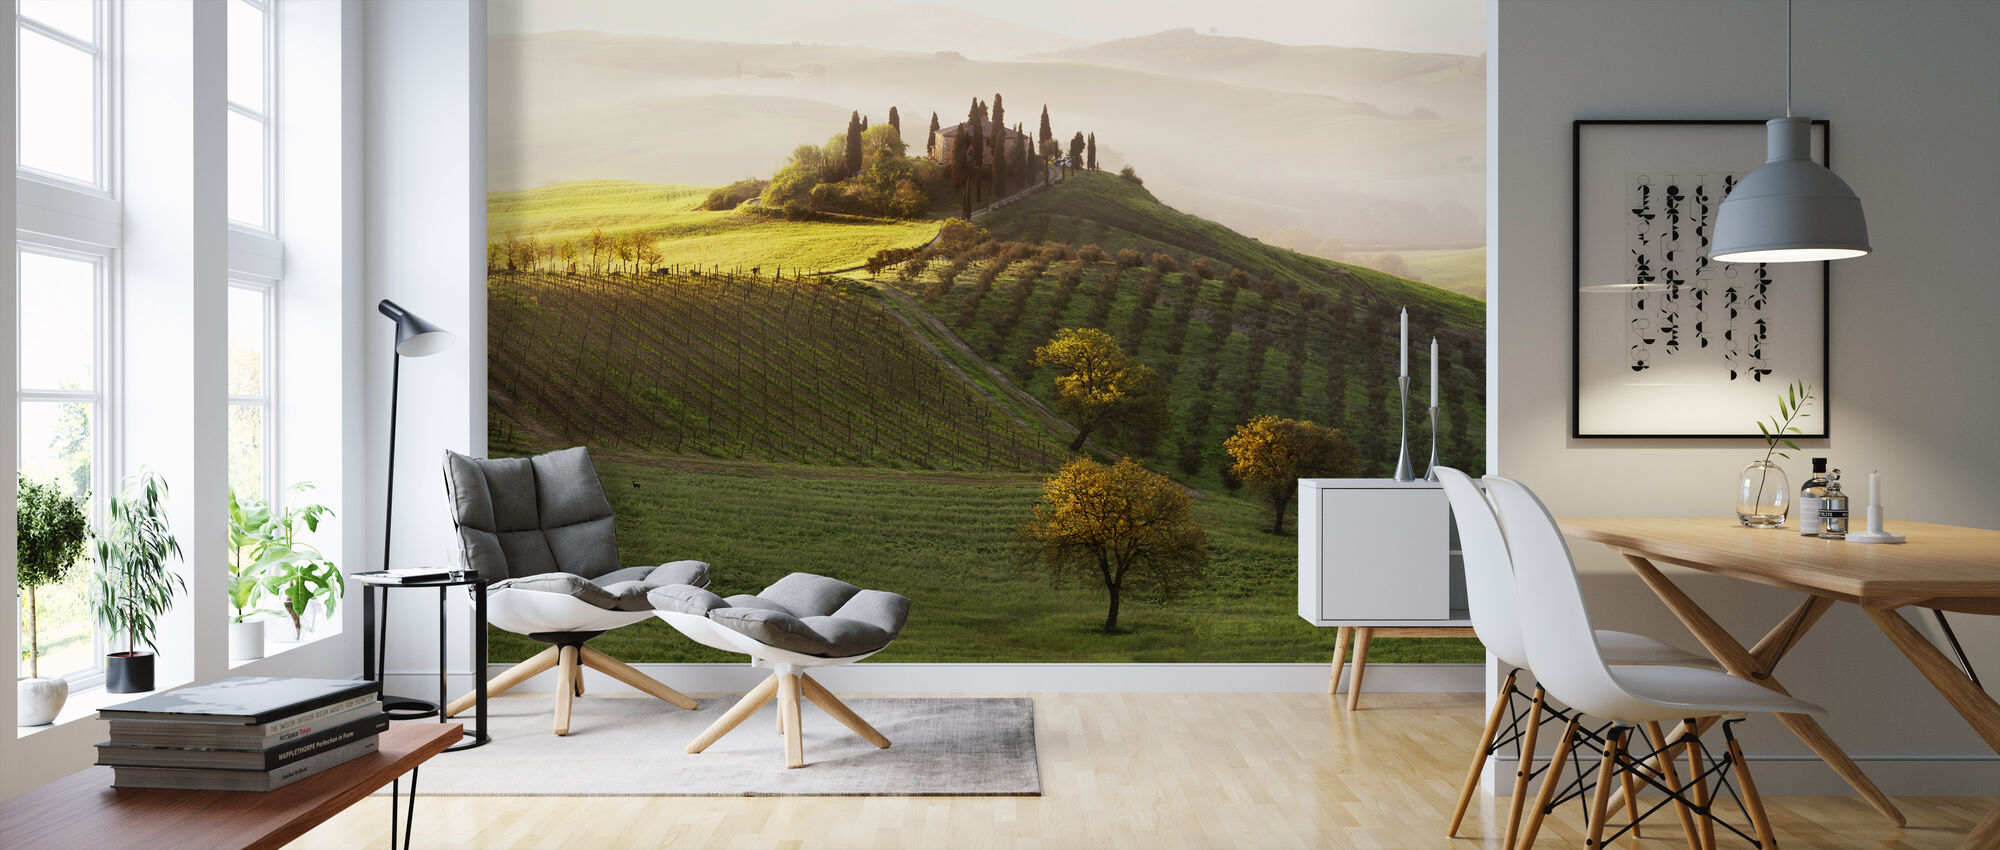 Green Landscape - Wallpaper - Living Room